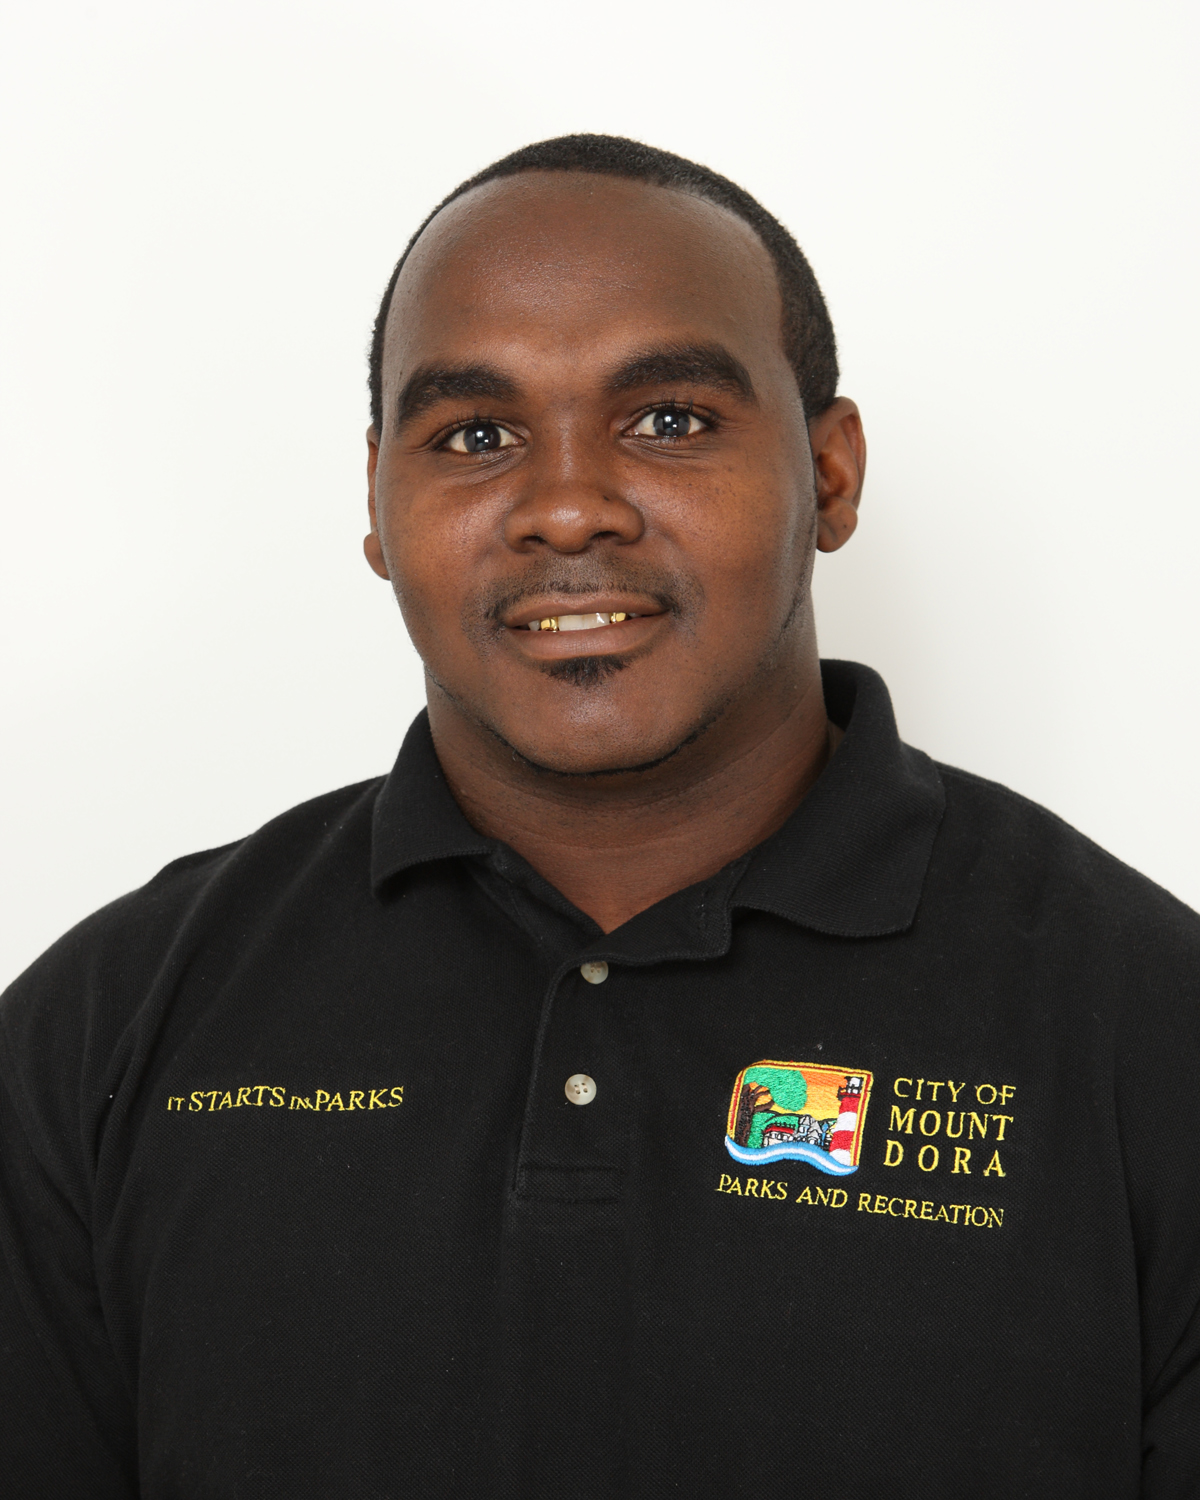 Reggie Thomas, Parks Services Supervisor